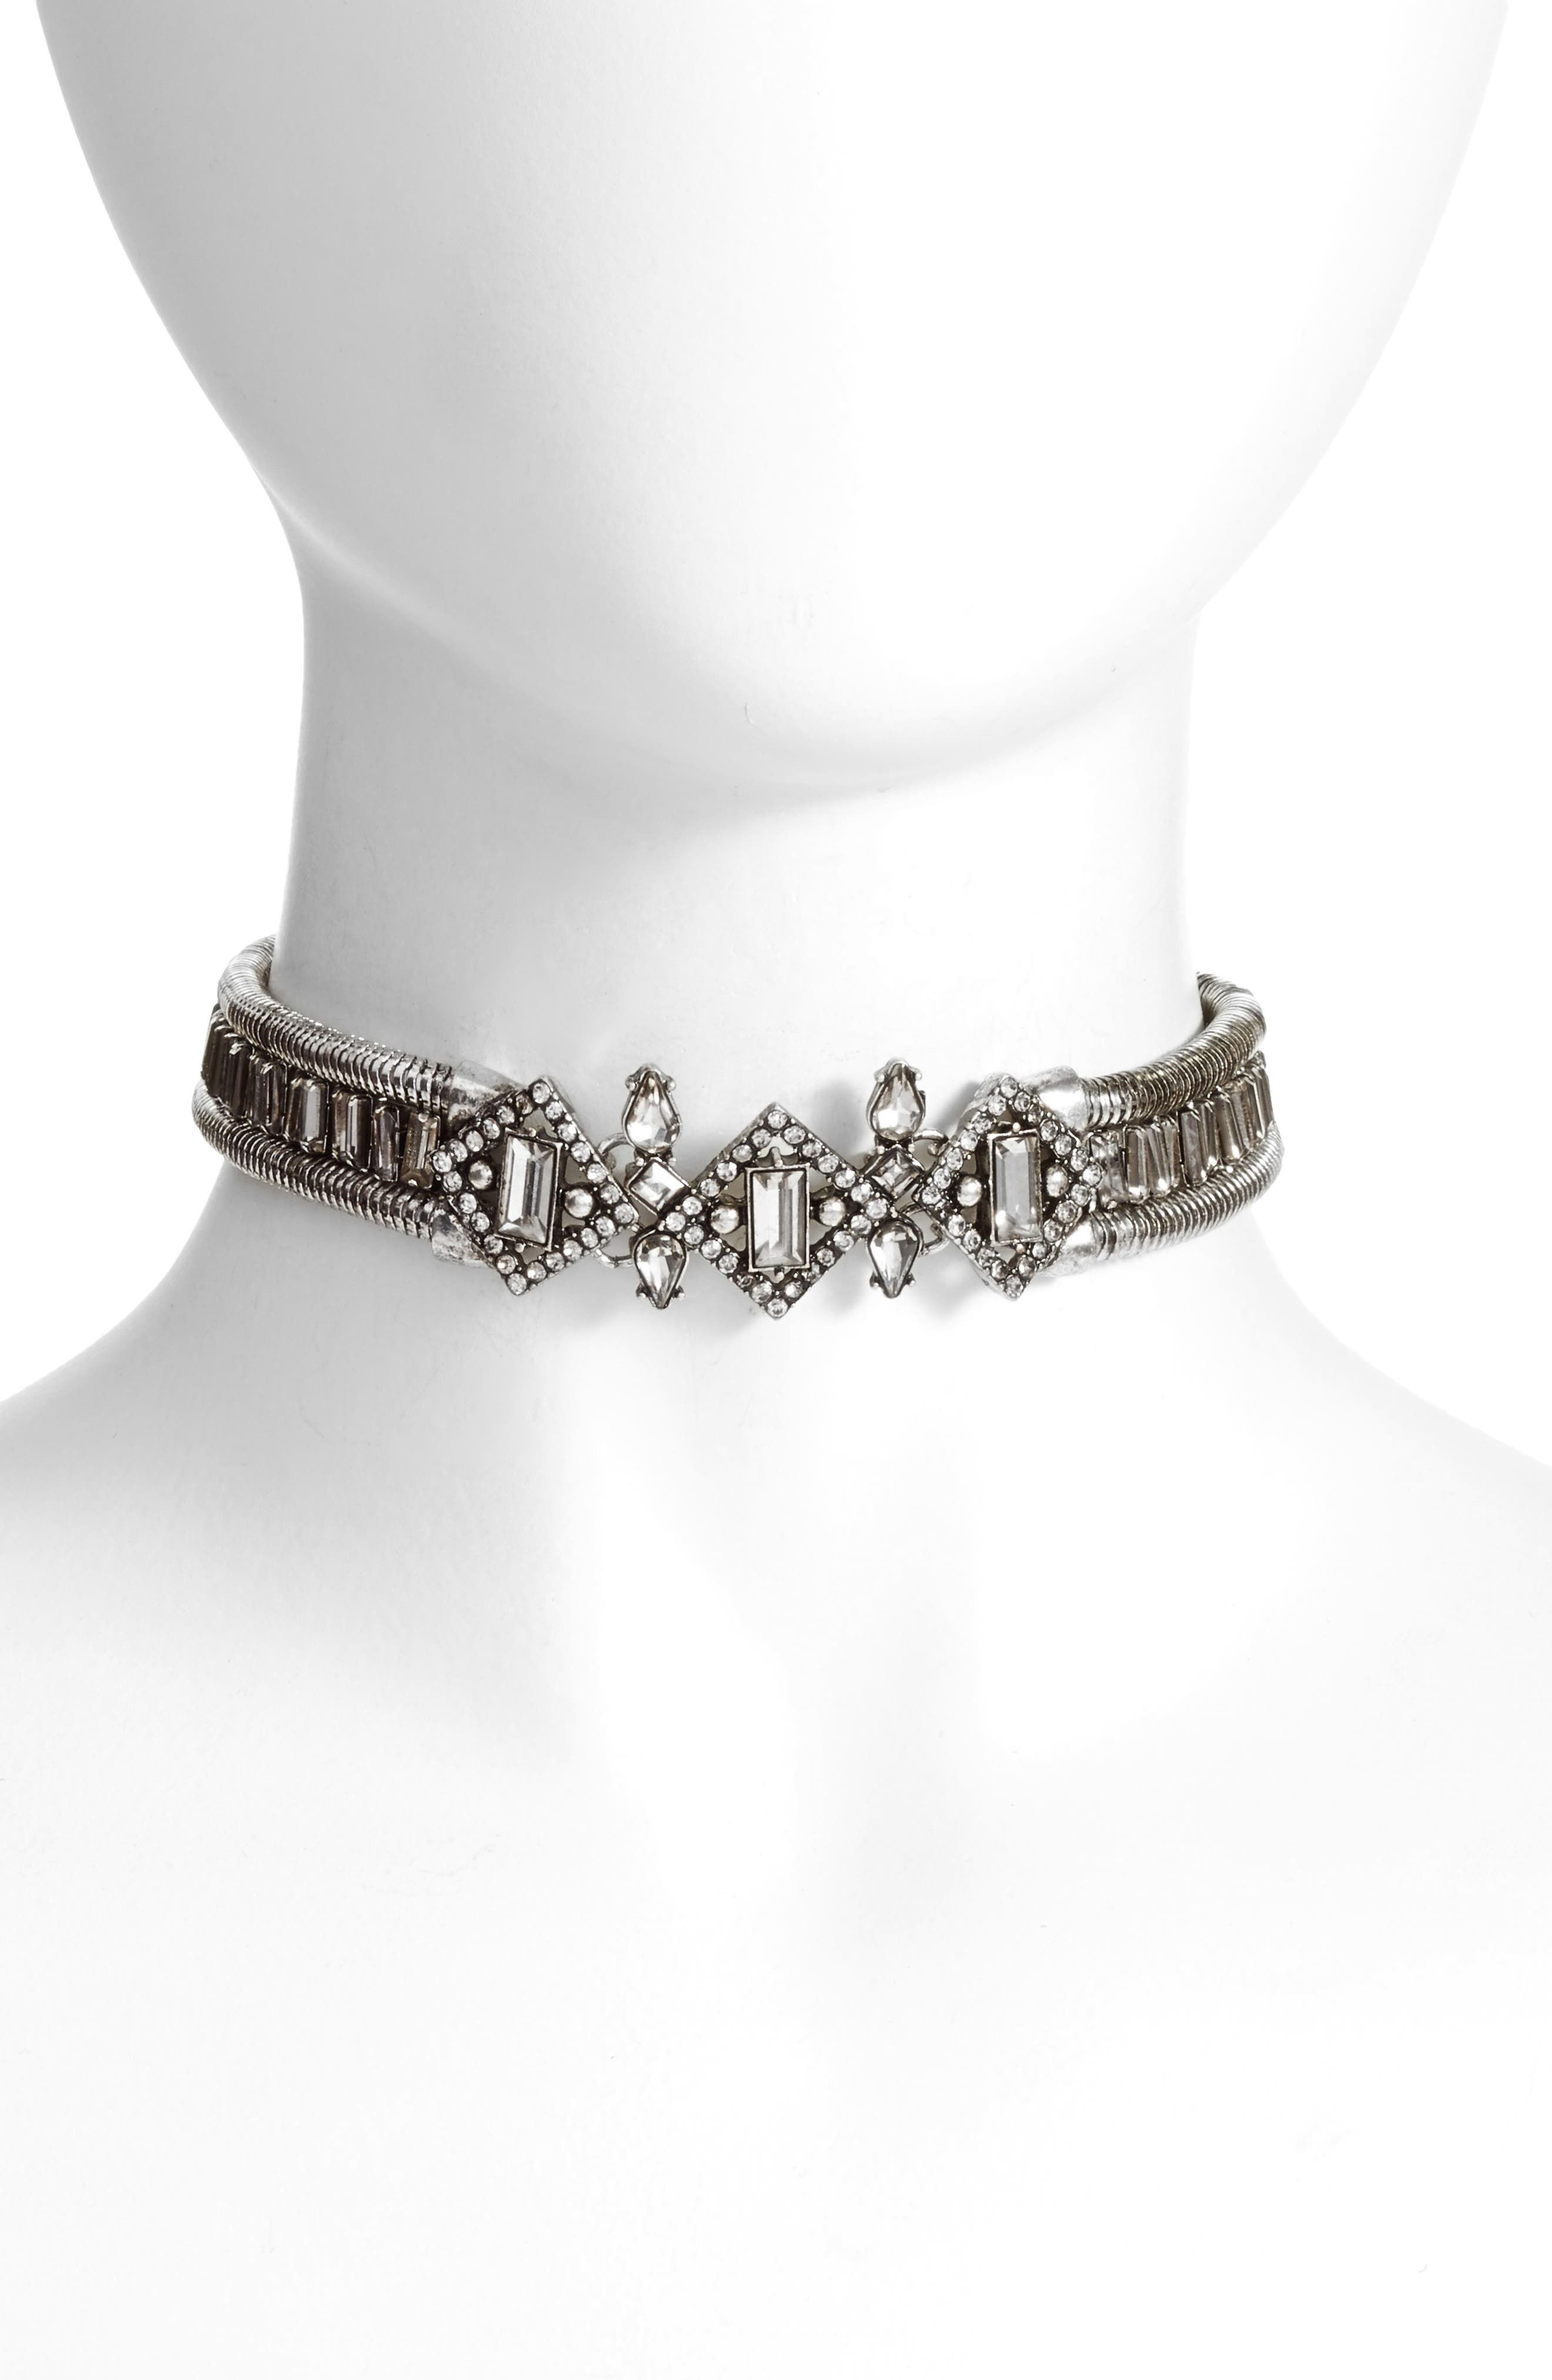 DLNLX BY DYLANLEX Crystal Choker Necklace